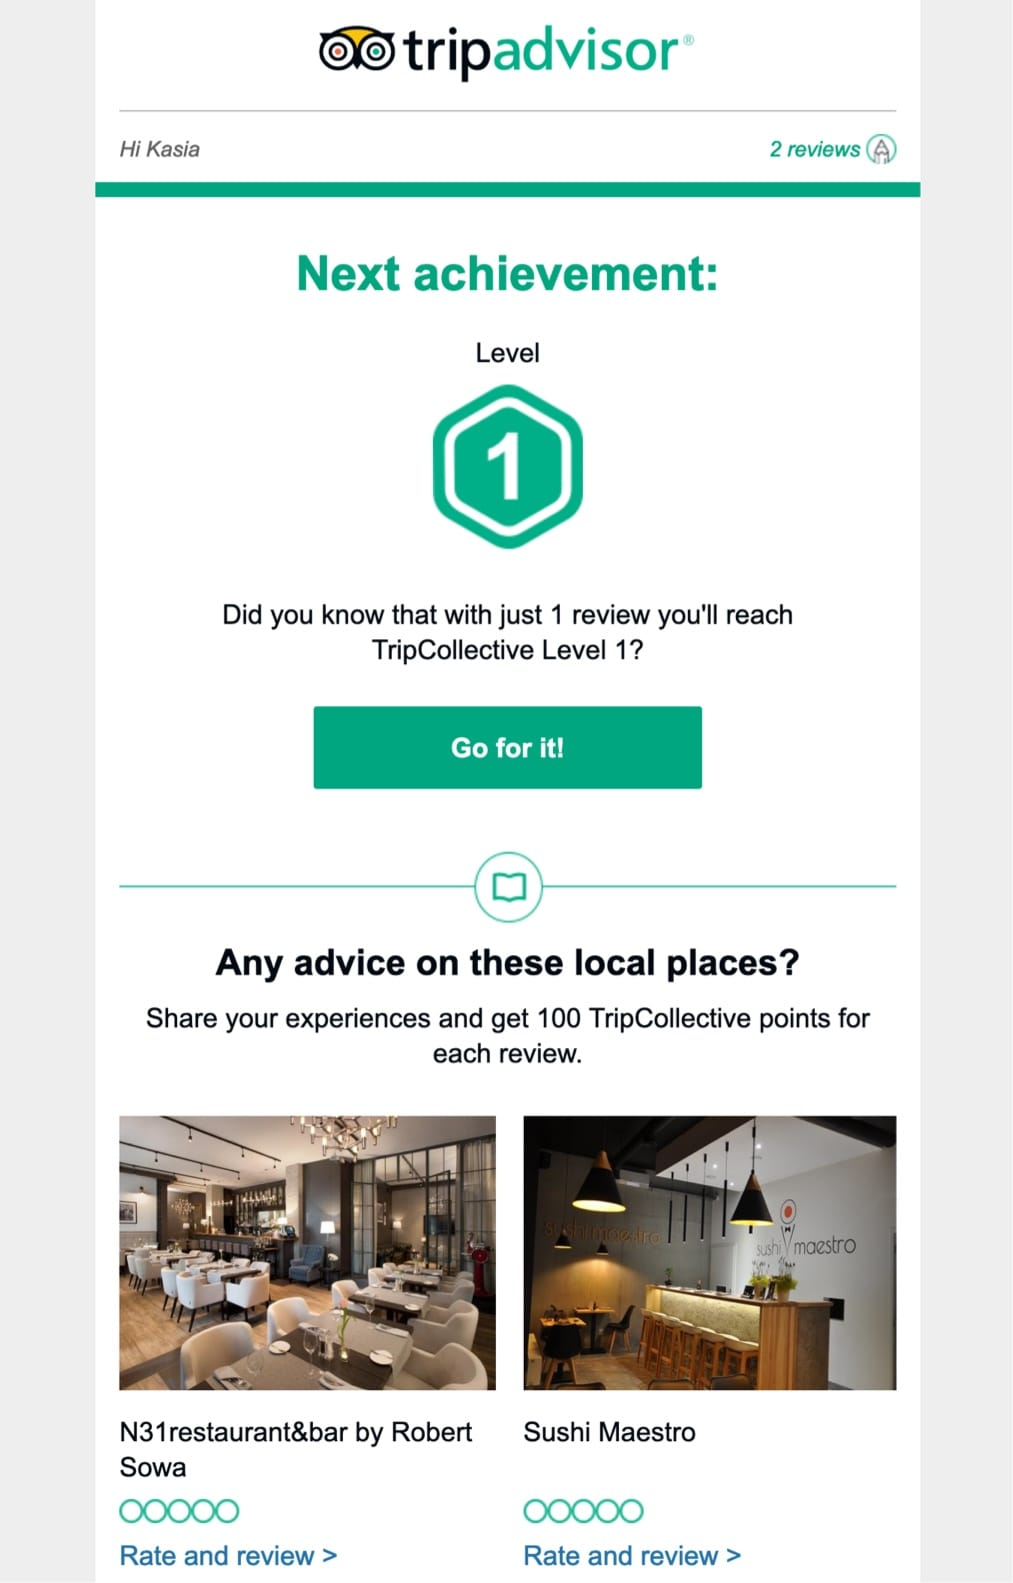 email-marketing-best-practices-tripadvisor